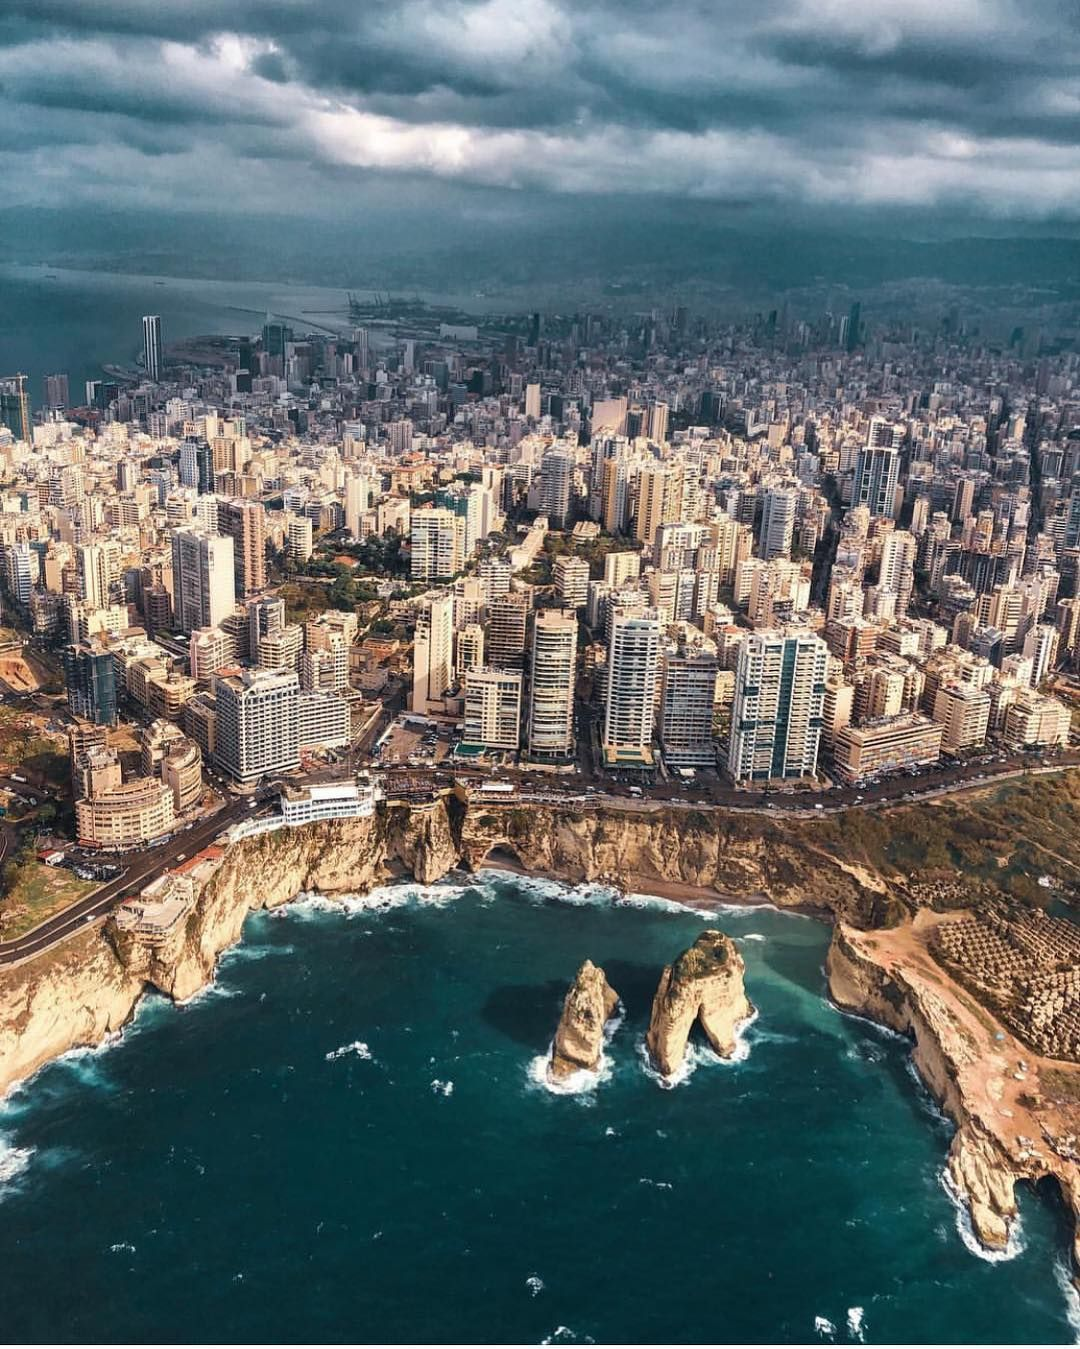 Good Morning Dear Followers With This Amazing View From Beirut Lebanon Photo Posted By Ozansihay Please Like Our Photo Spots Instagrammable Places Beirut